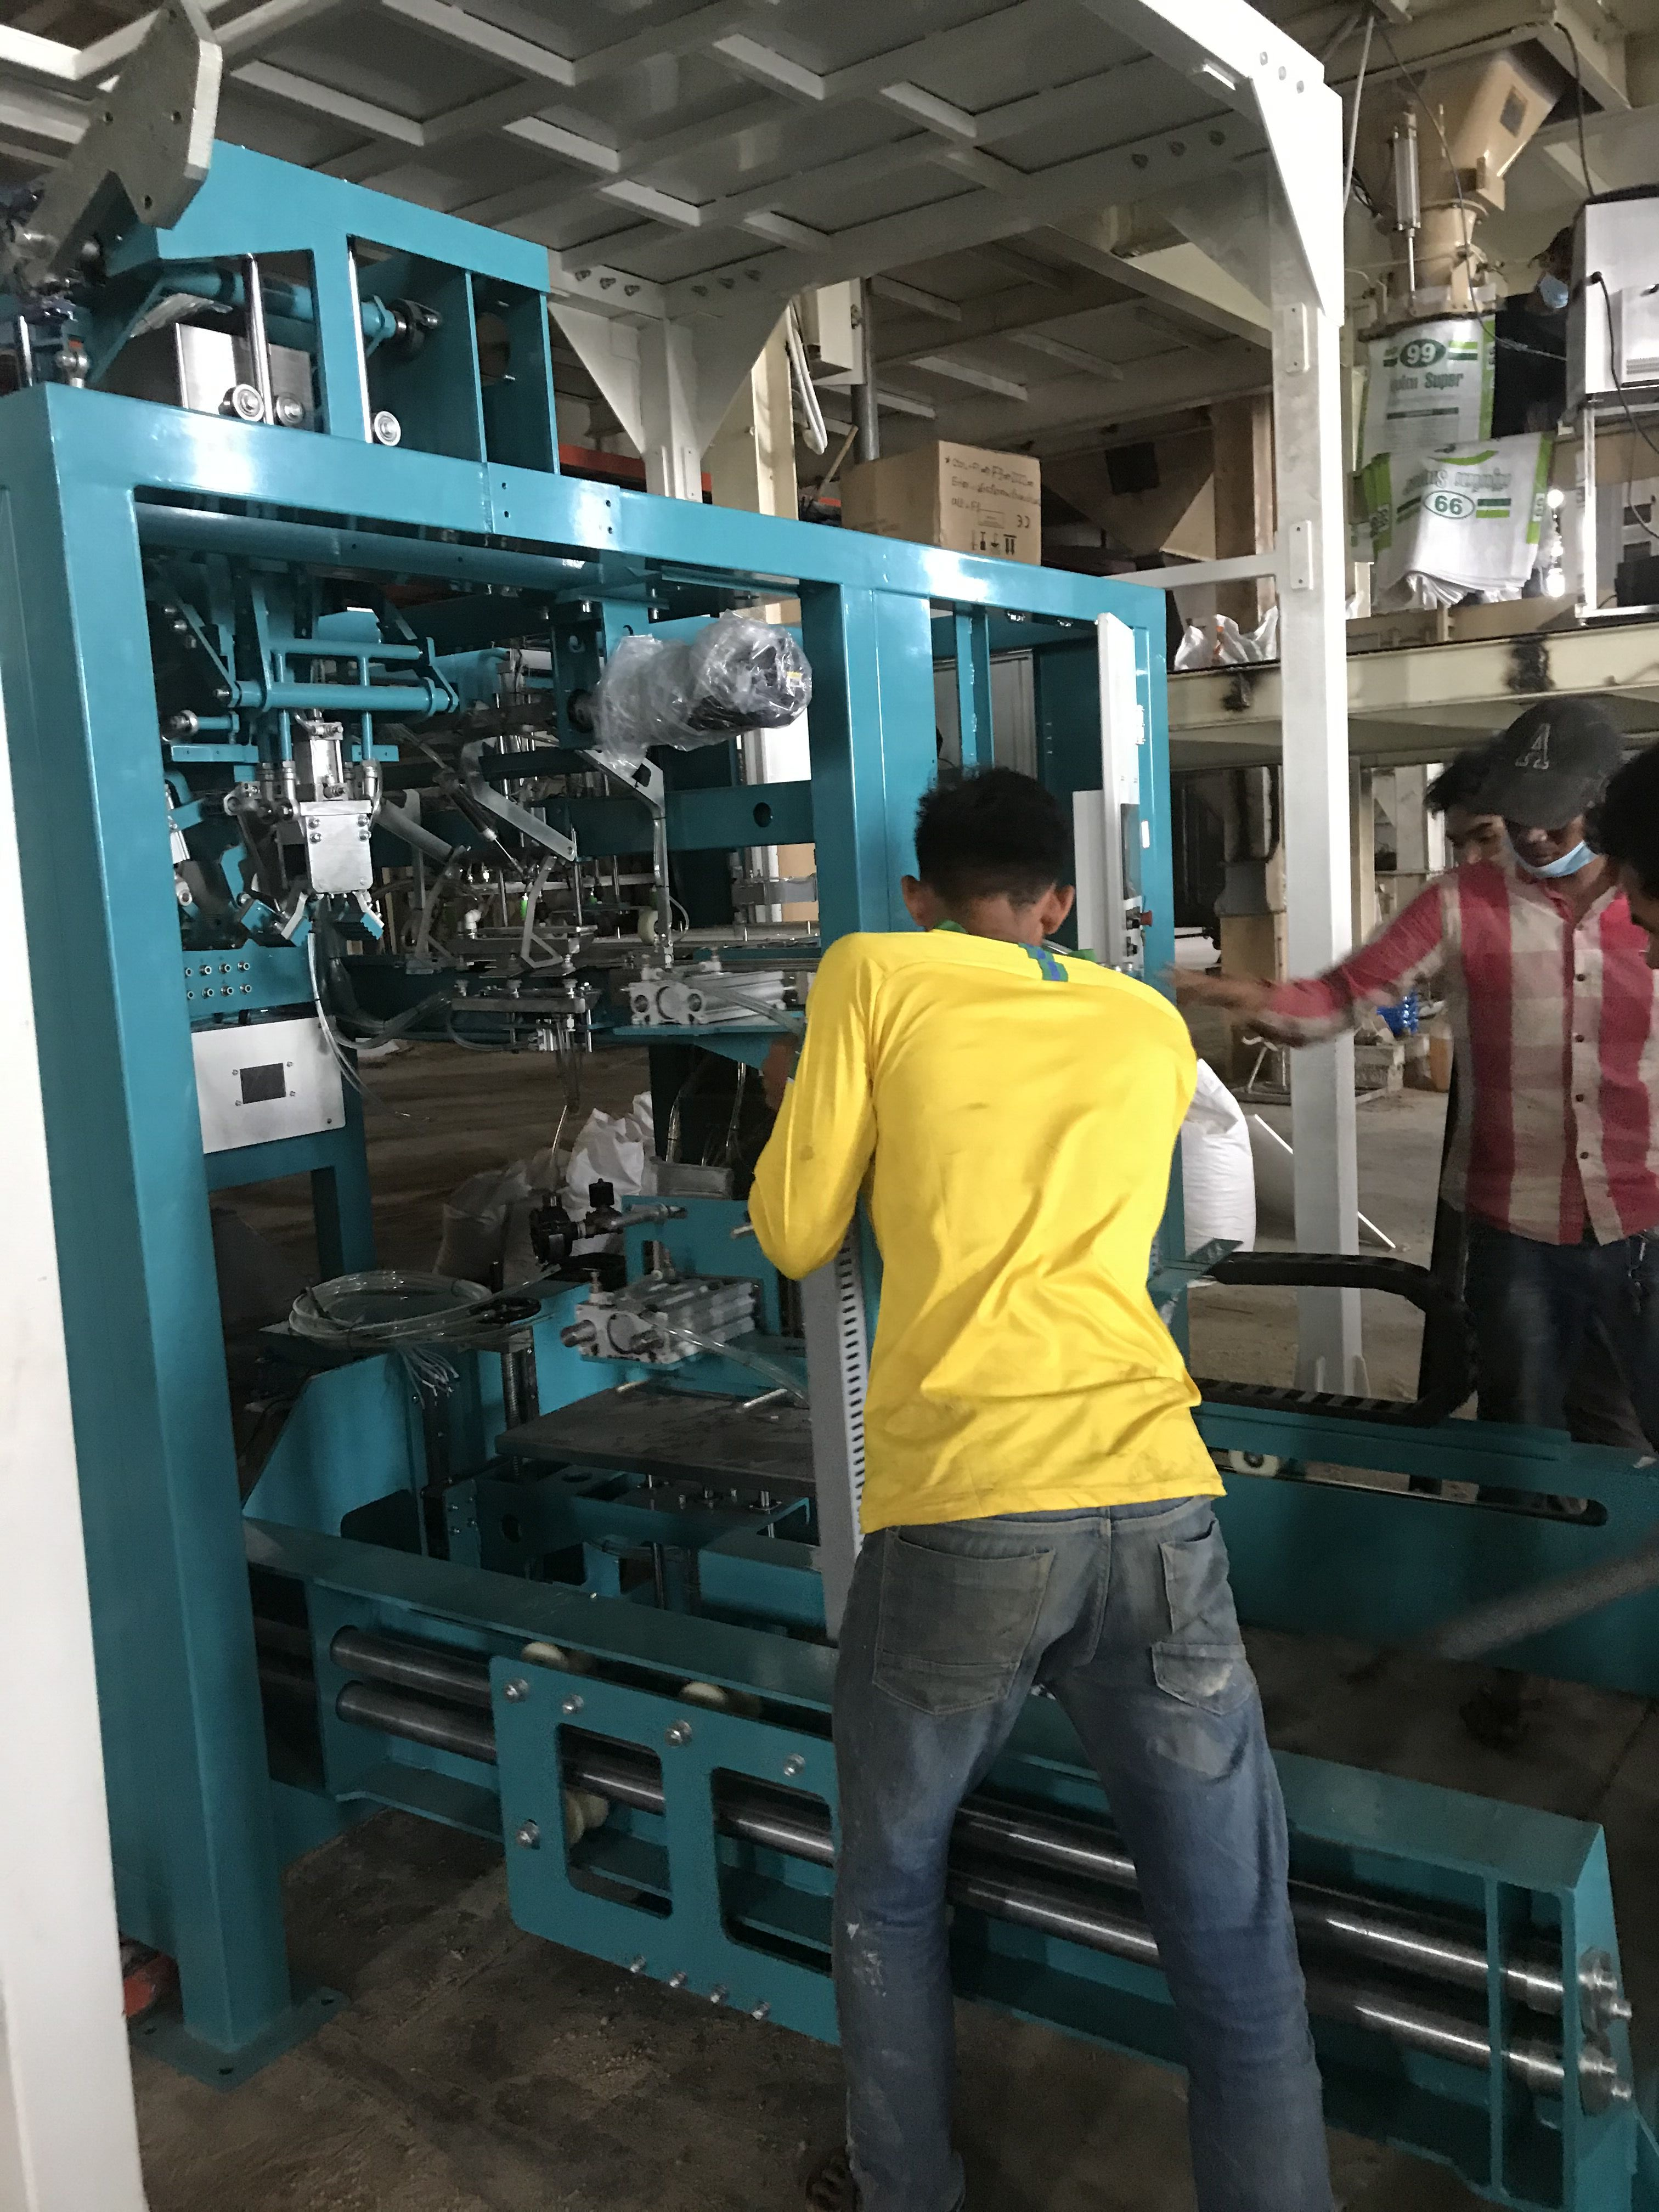 auto palletizer Fully Automatic Bagging 50Kg Bag And Palletising Machine Automatic bag weighing and packaging equipment Robotic palletizing equipment packaging equipment  Automatic bagging machine Aut